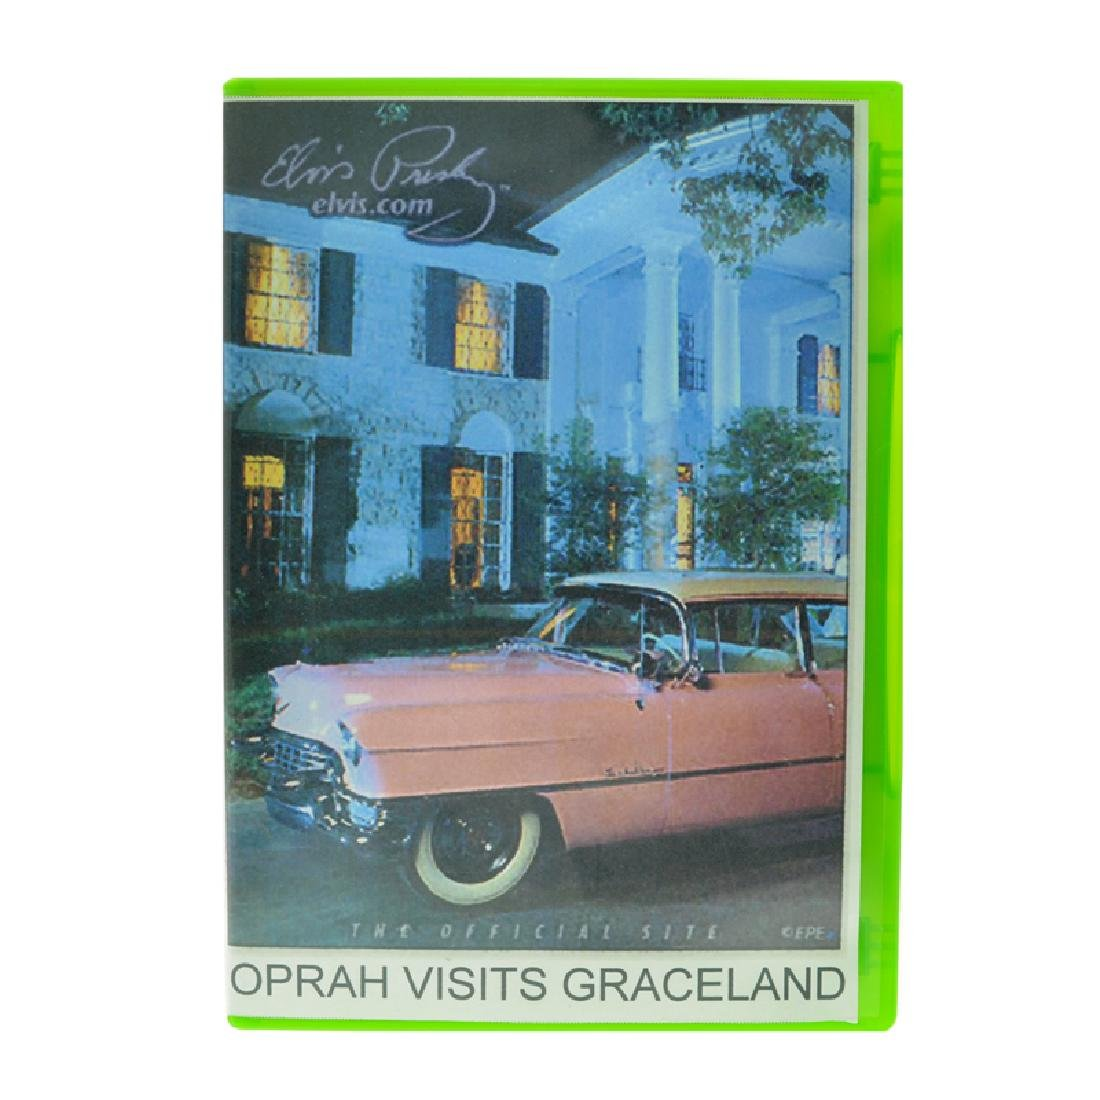 Elvis Presley Movie: Oprah Visits Graceland